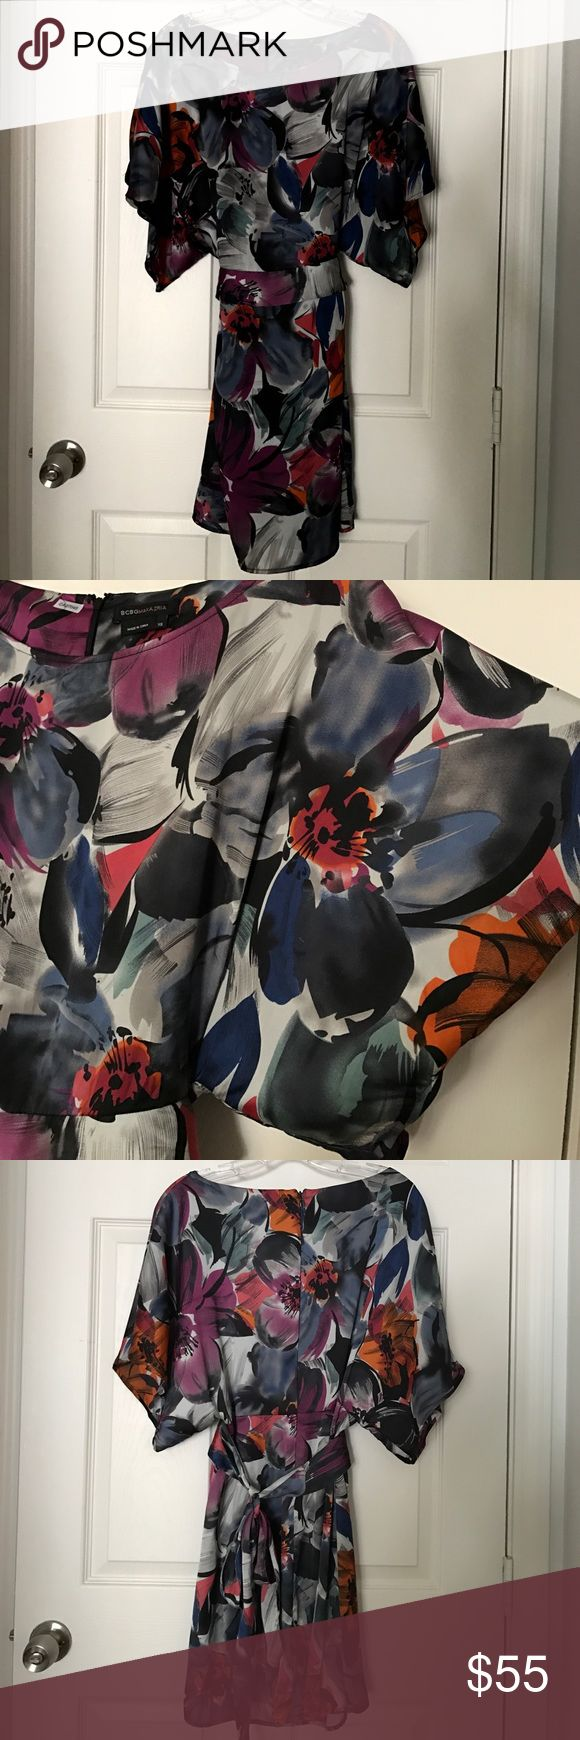 BCBGMaxAzria floral dress BCBGMaxAzria floral dress. Gorgeous piece! Full kimono sleeves, tie waistband & full skirt. Flowers looked hand painted, lots of strokes & colors. Colorful but lined with grays & blacks so doesn't look too bright. BCBGMaxAzria Dresses